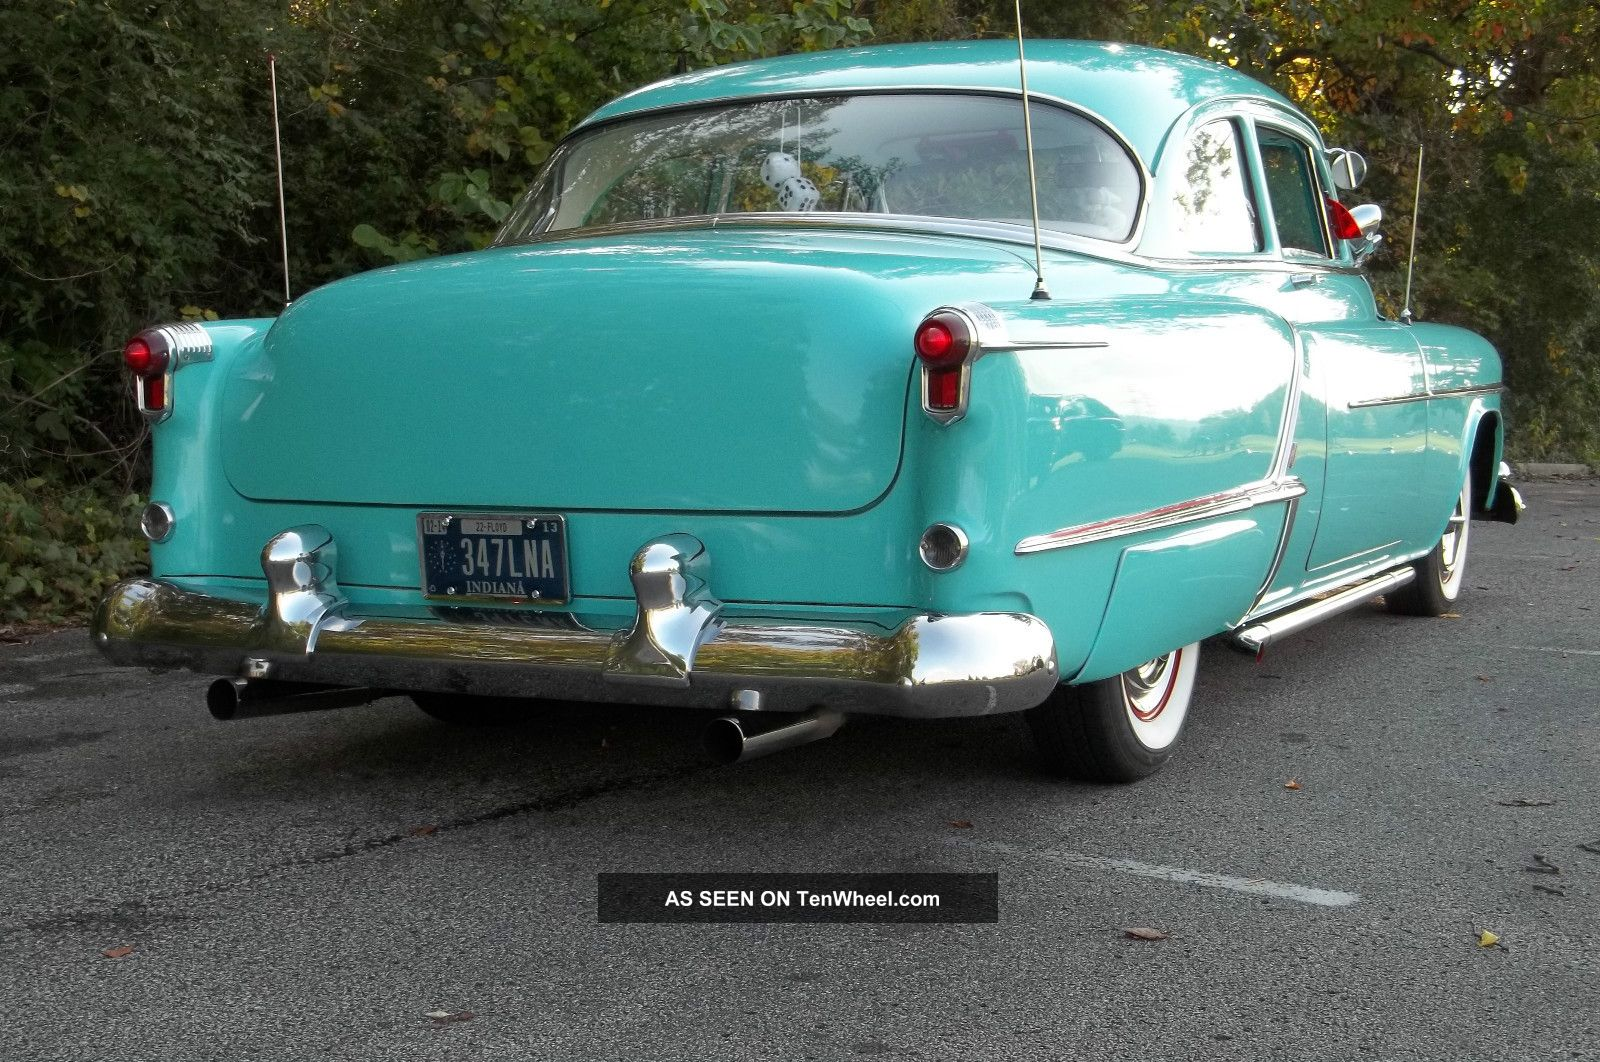 Olds Oldsmobile Led Sled Hot Rat Rod Door Low Rider Of S S Lgw also Img moreover Ford Crestline American Classics Car F E D E D C A F E Ac Cce also Ford Thunderbird as well Ford. on 1953 ford customline 4 door